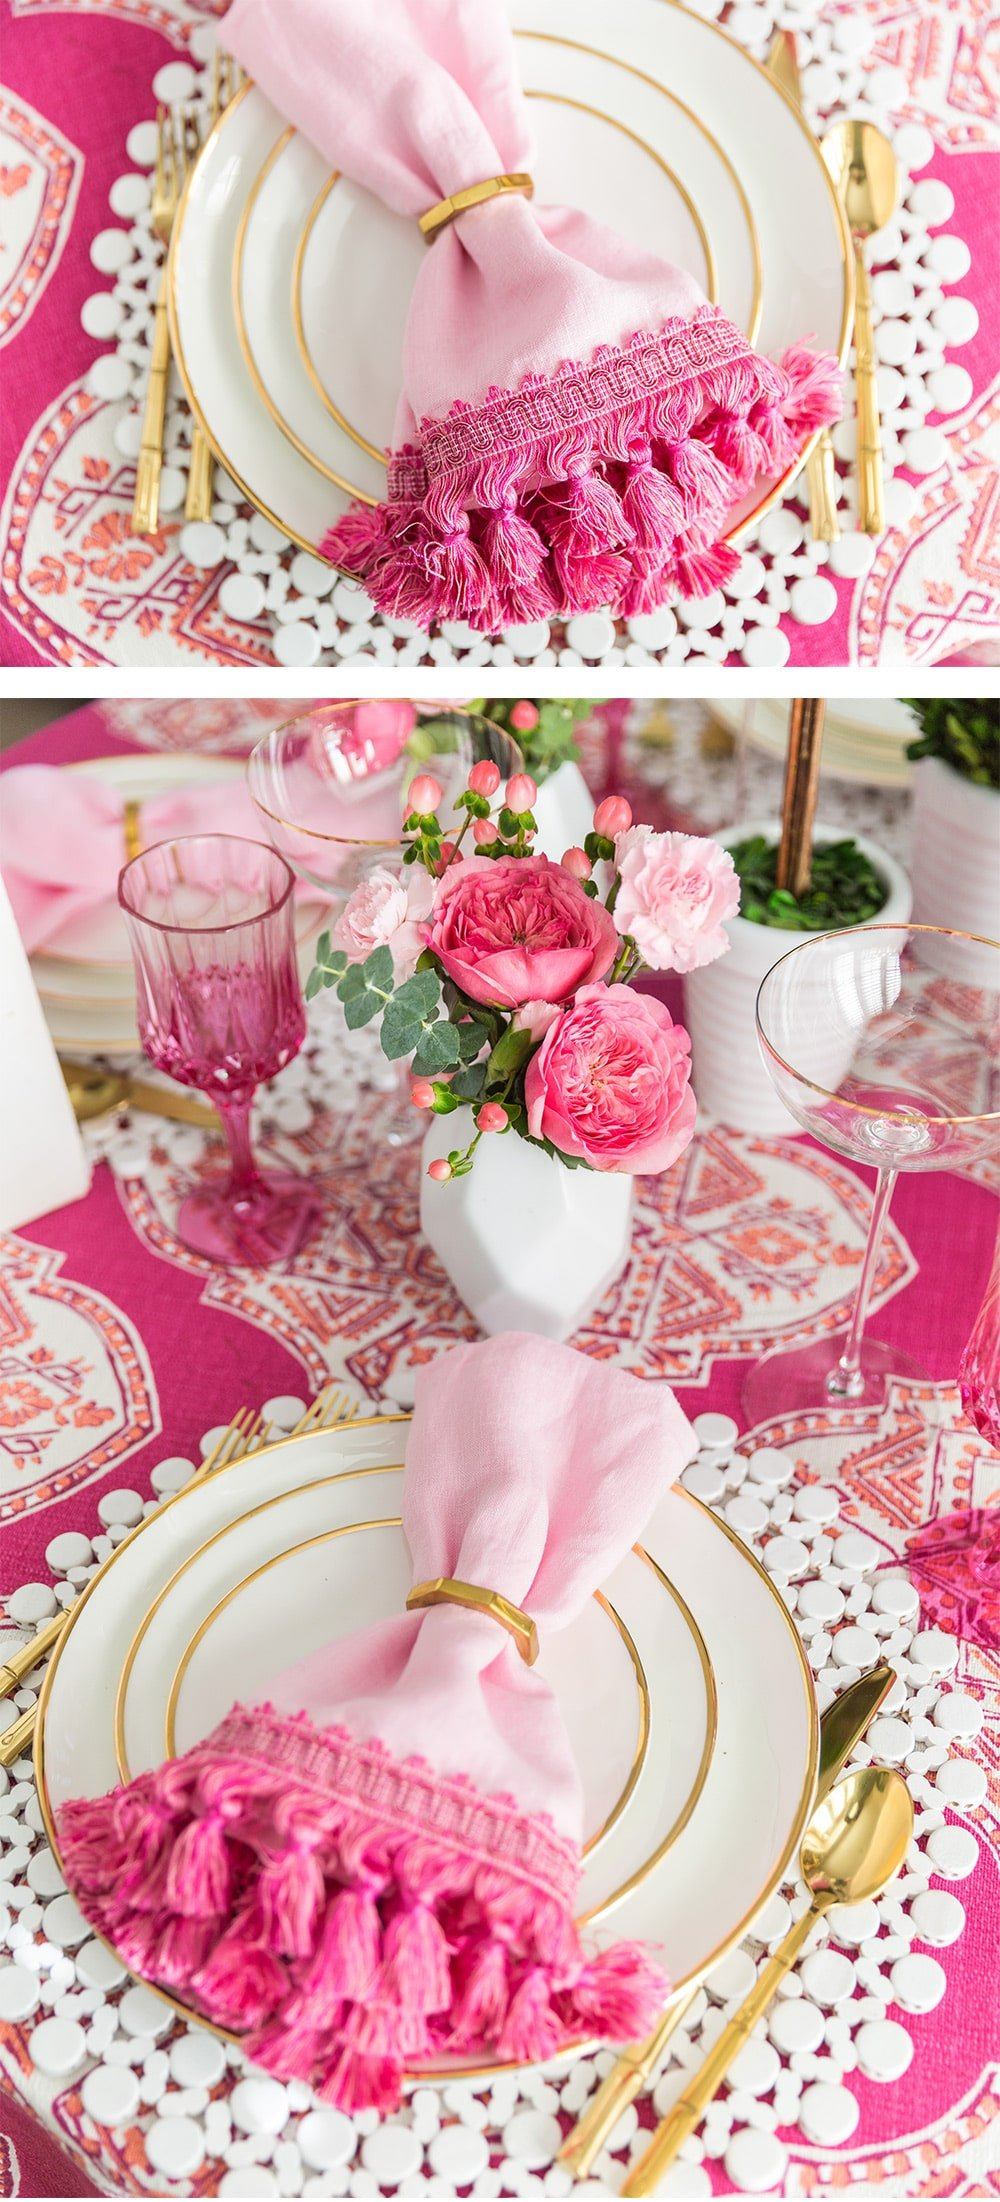 DIY Fringe Trimmed Napkins #diy #craft